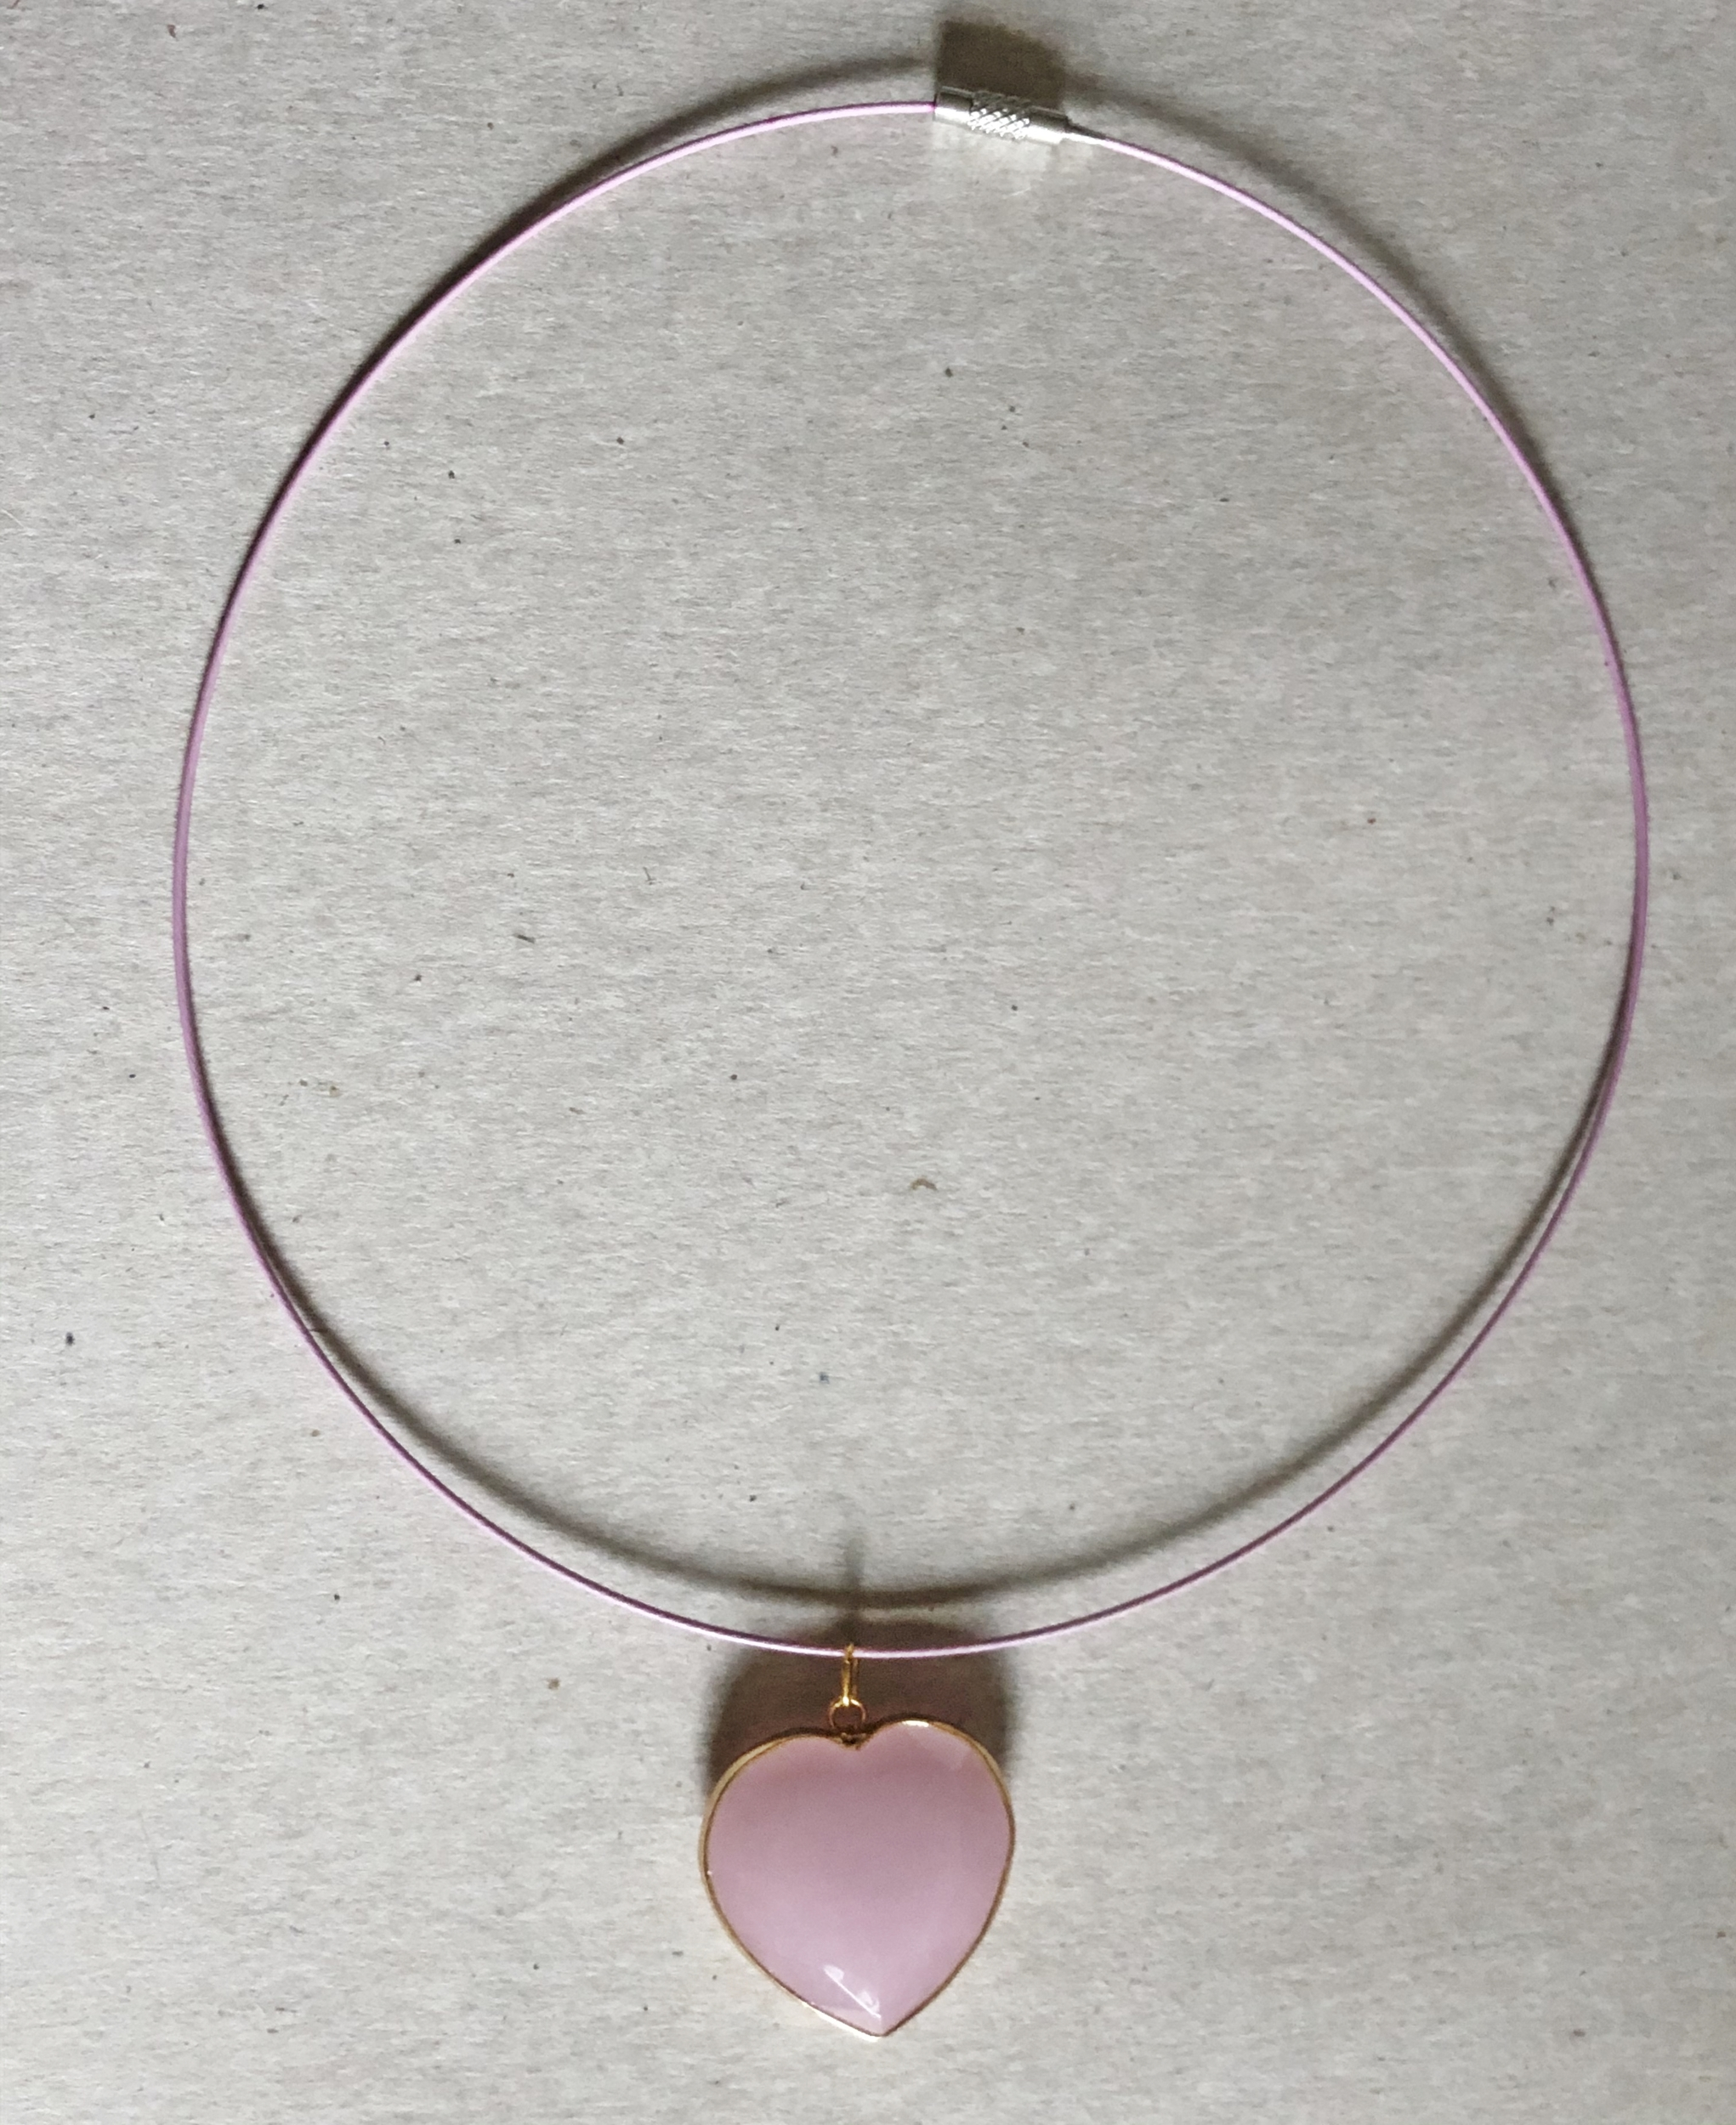 Collier coeur quartz rose cerclé  et cable acier rose - Angel shop